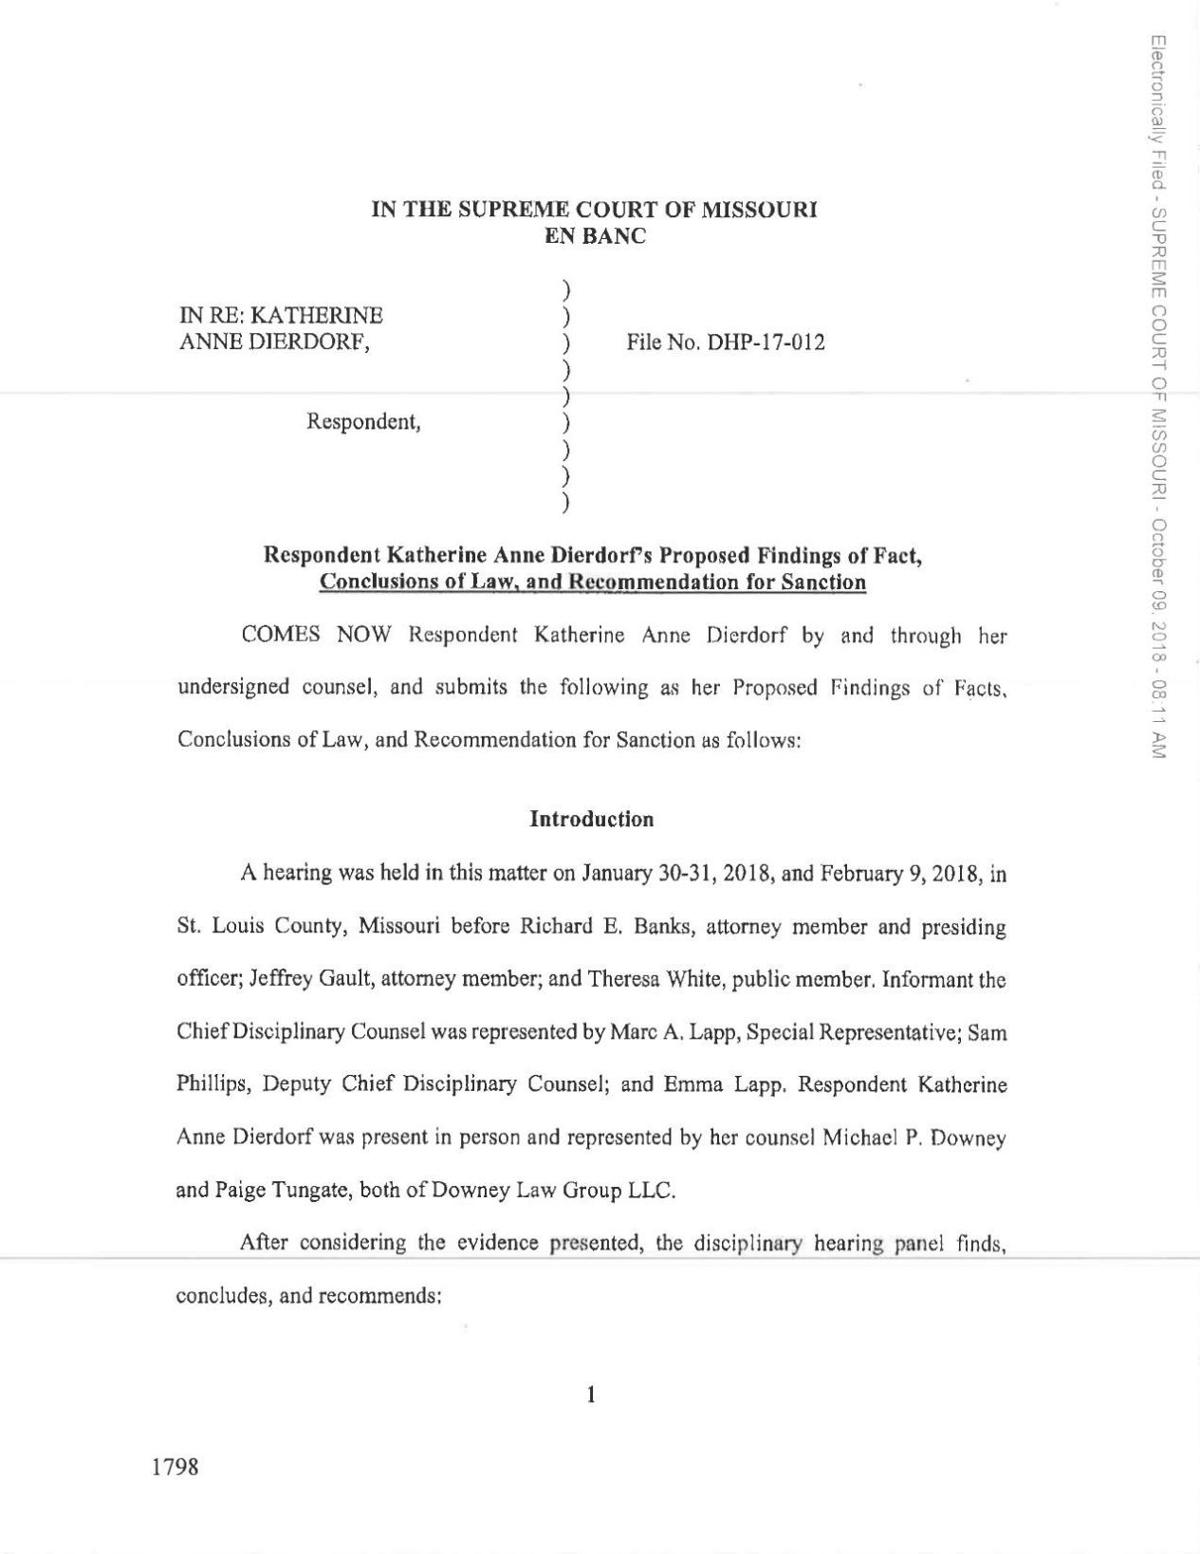 Dierdorf proposed findings of fact and conclusion of law